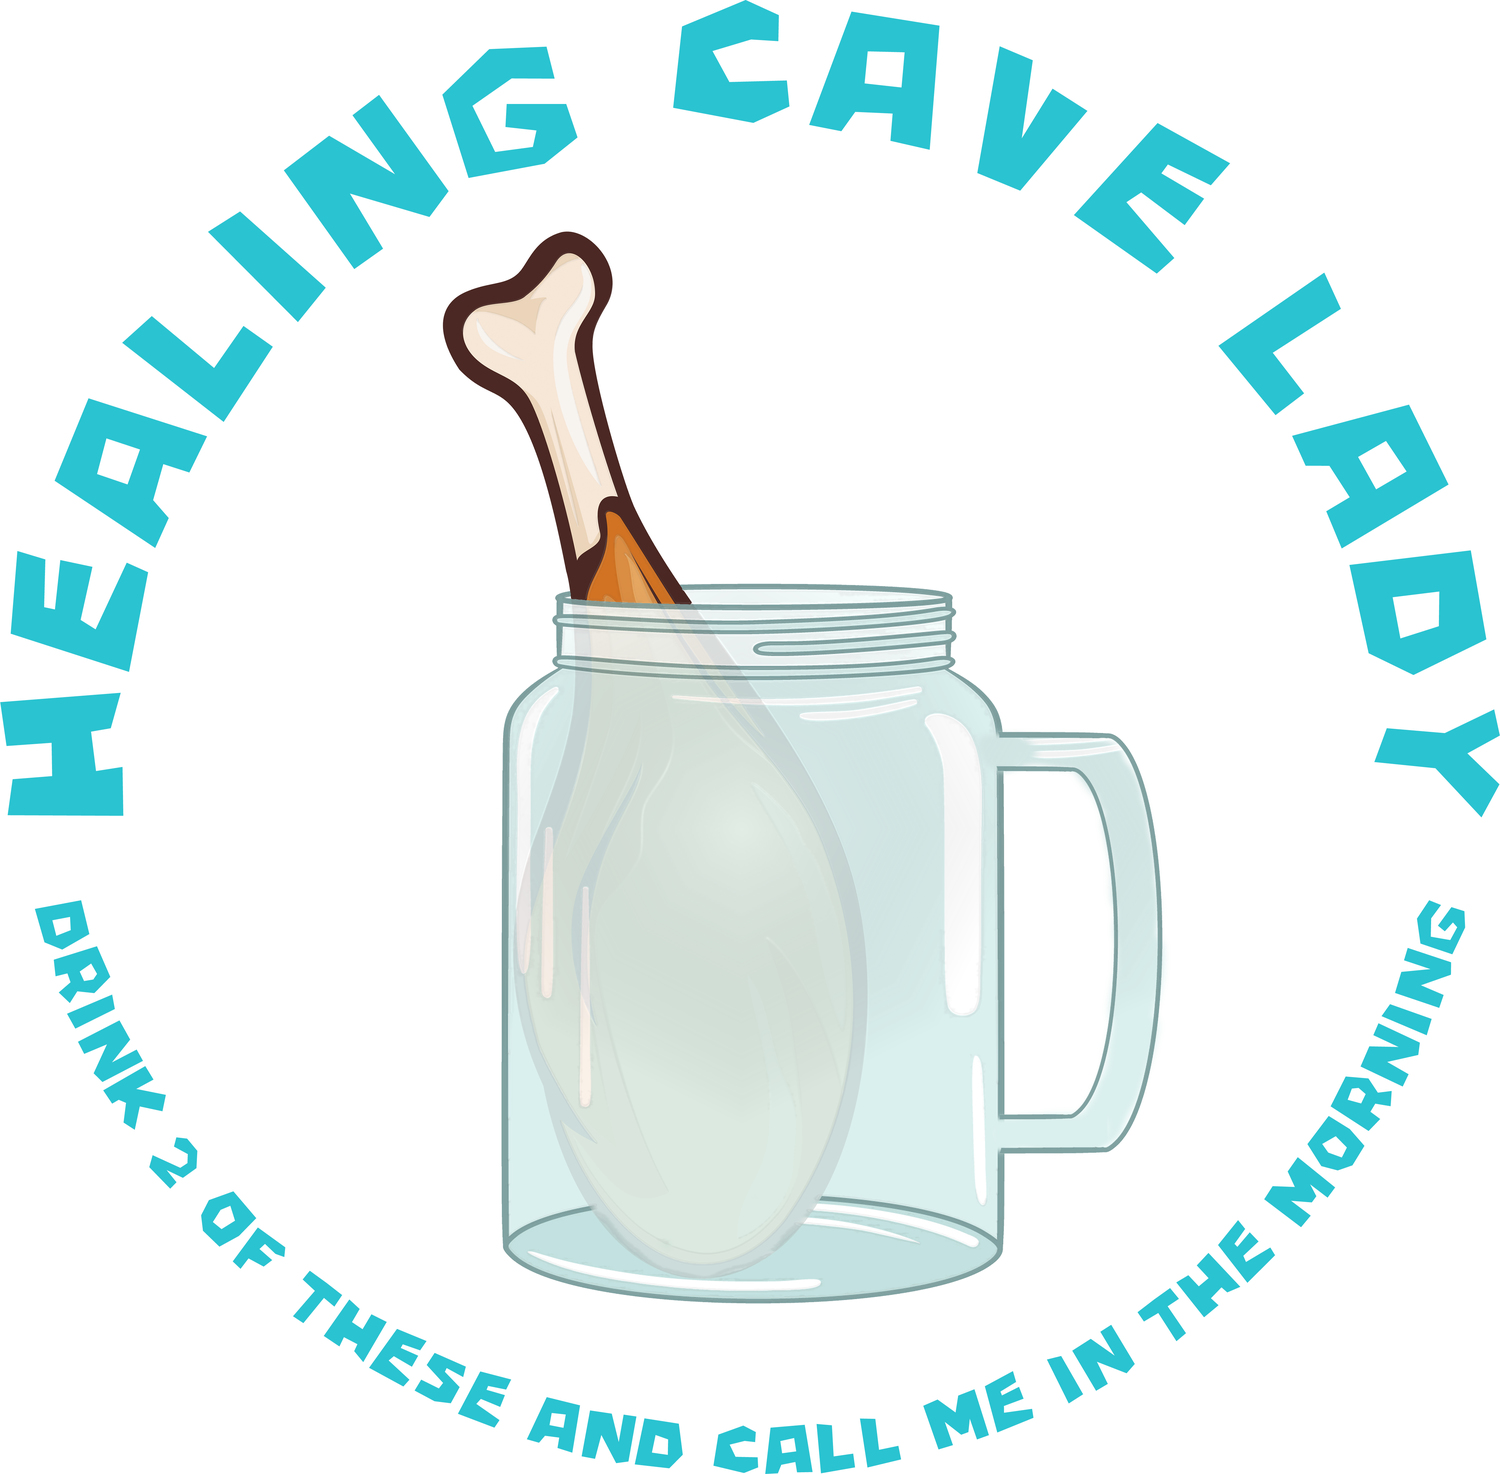 Healing Cave Lady